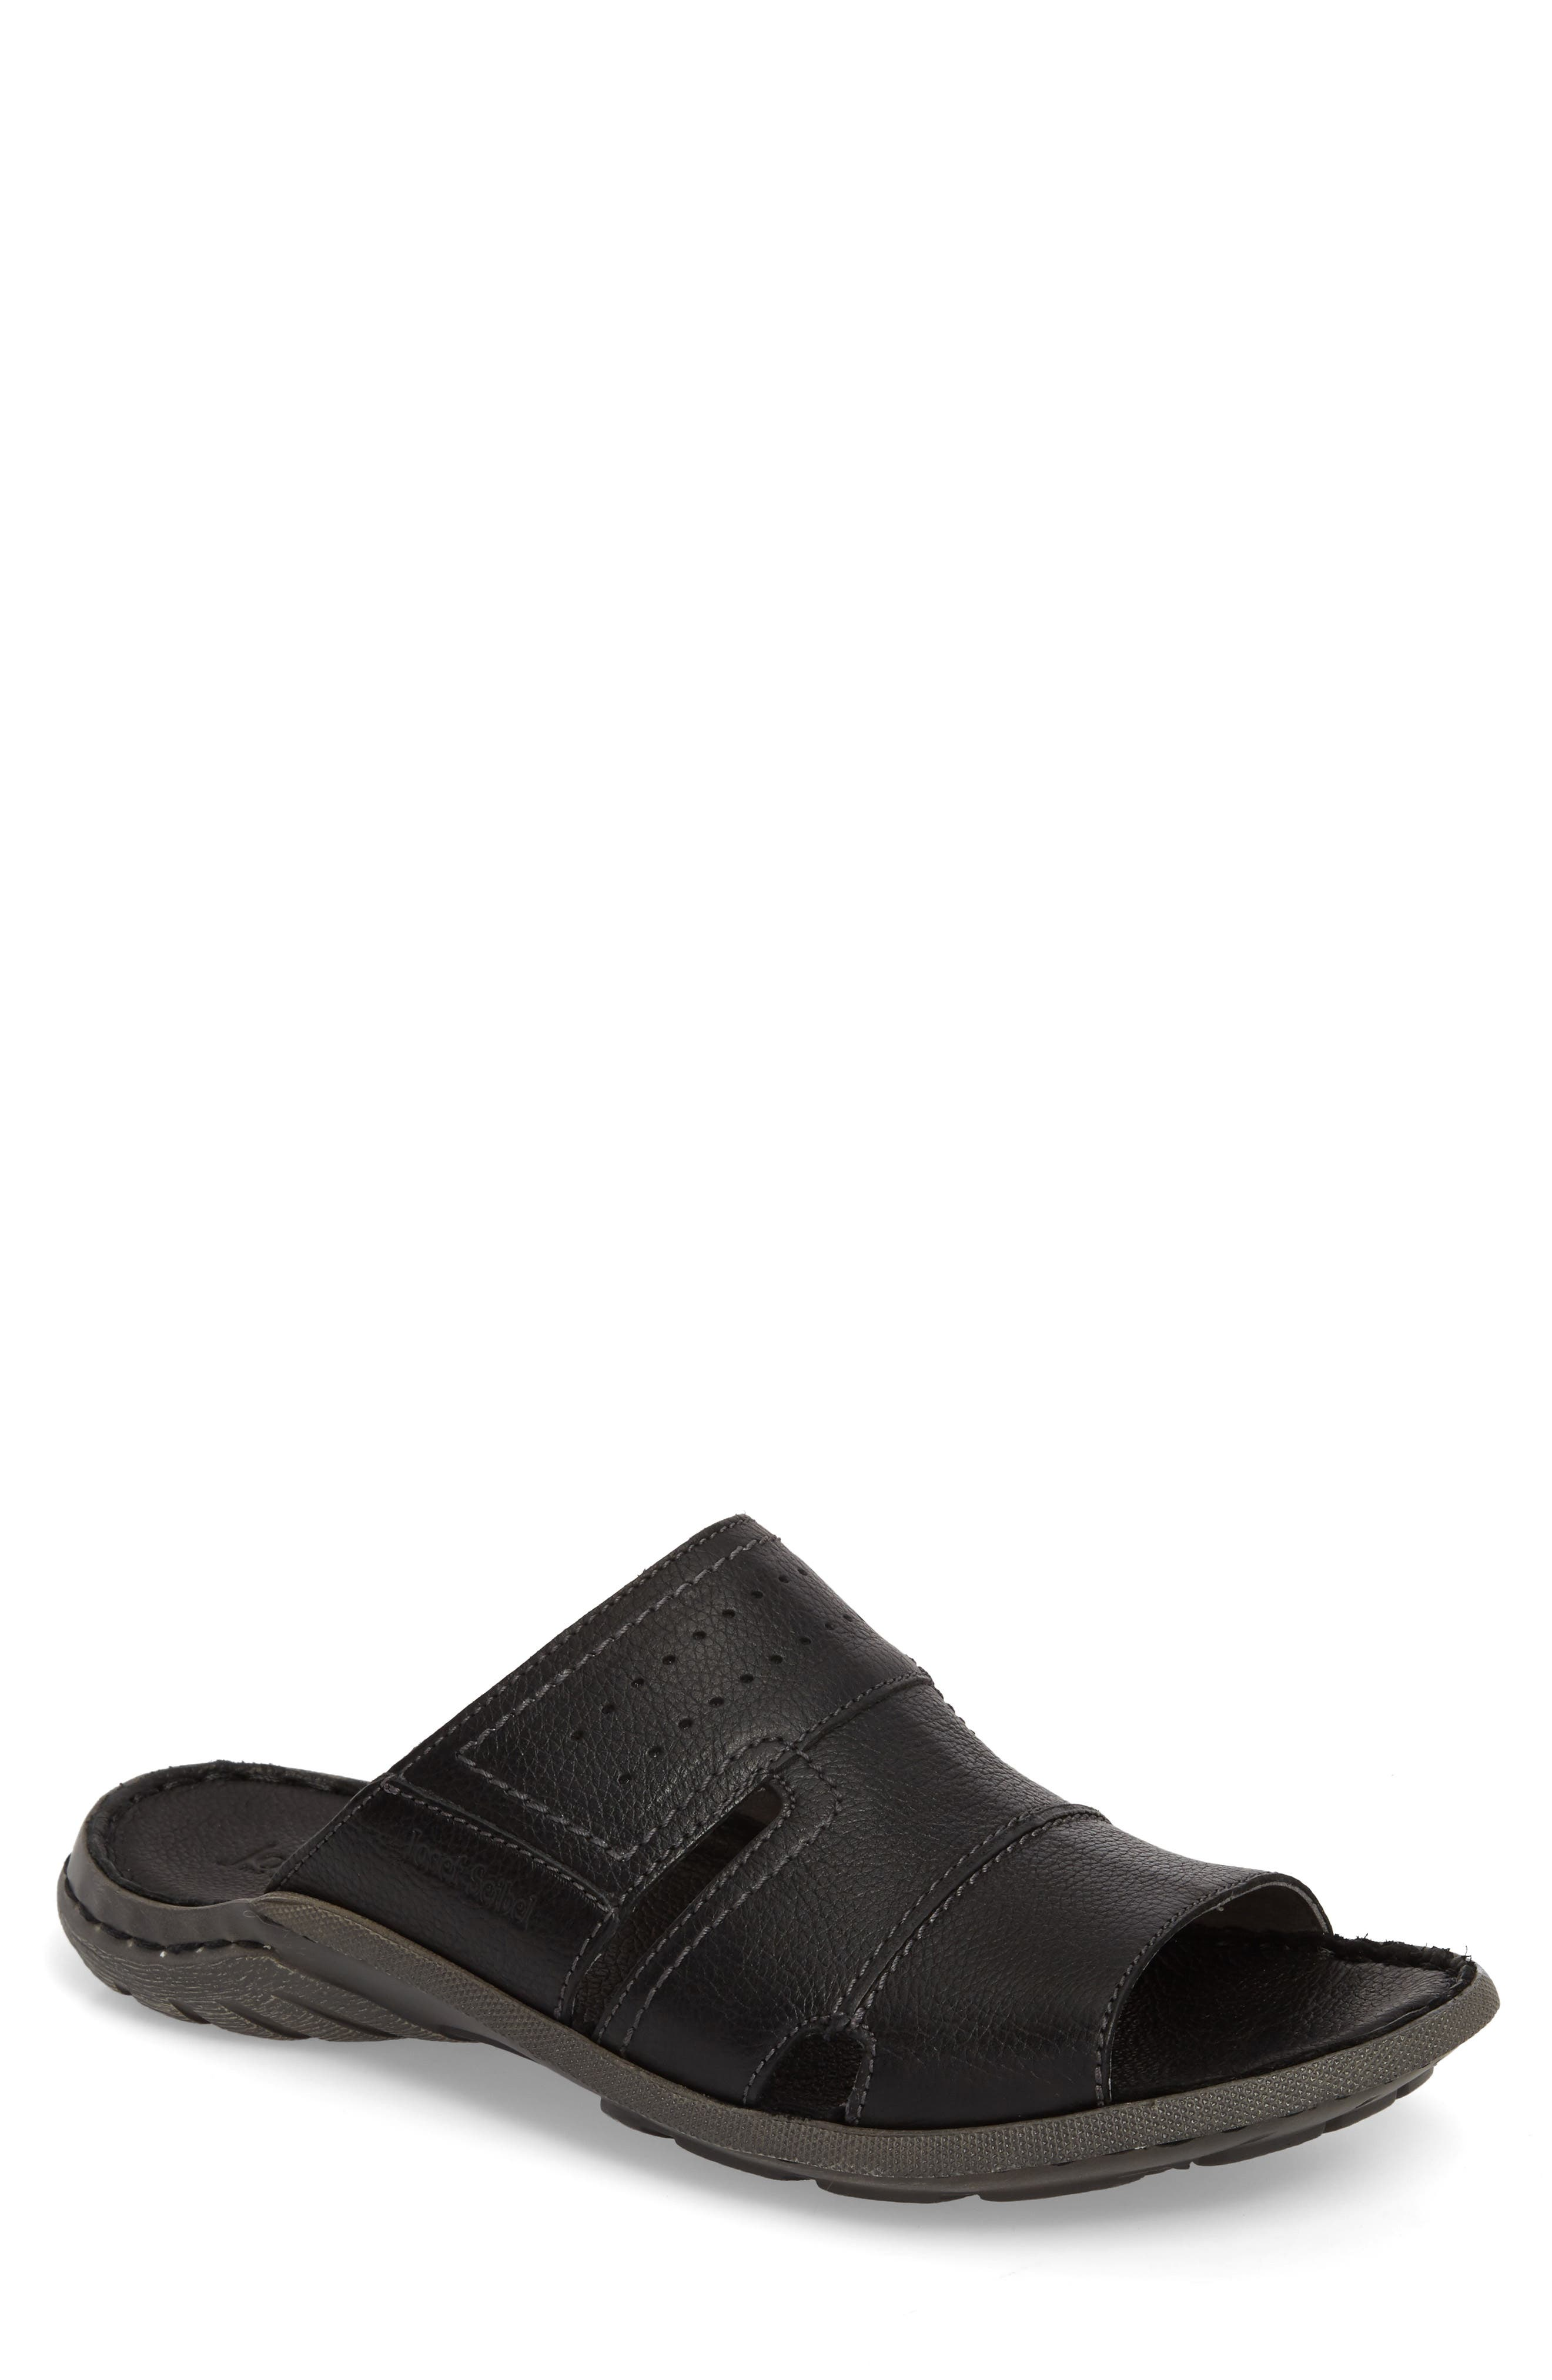 Logan Slide Sandal,                             Main thumbnail 1, color,                             004